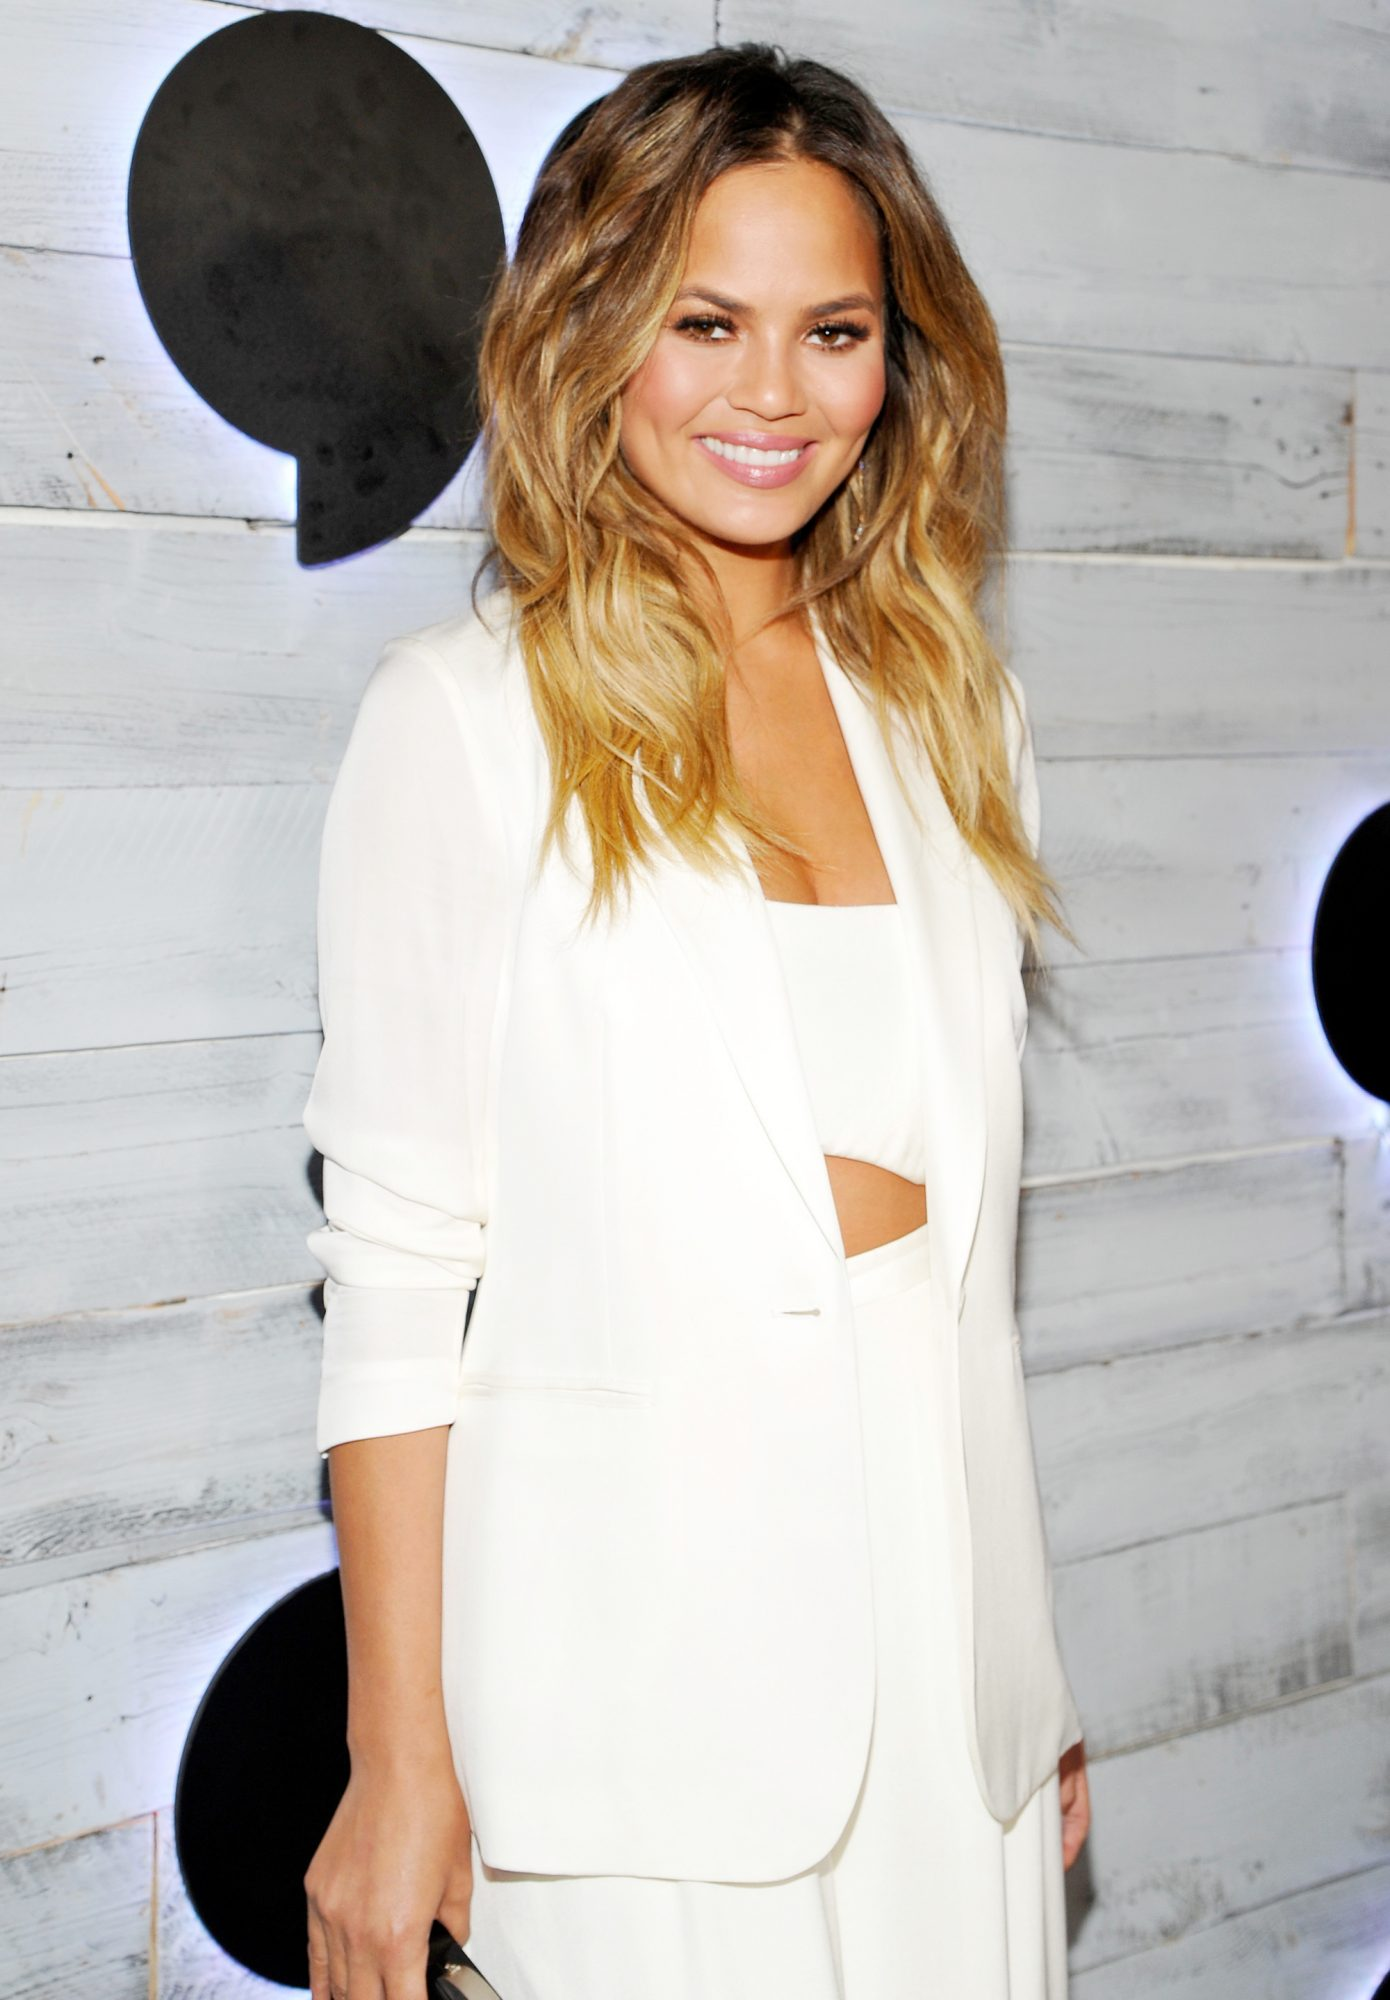 Is Chrissy Teigen Forming Her Own #GirlSquad? Here Are the Celebs She'd Like to Befriend